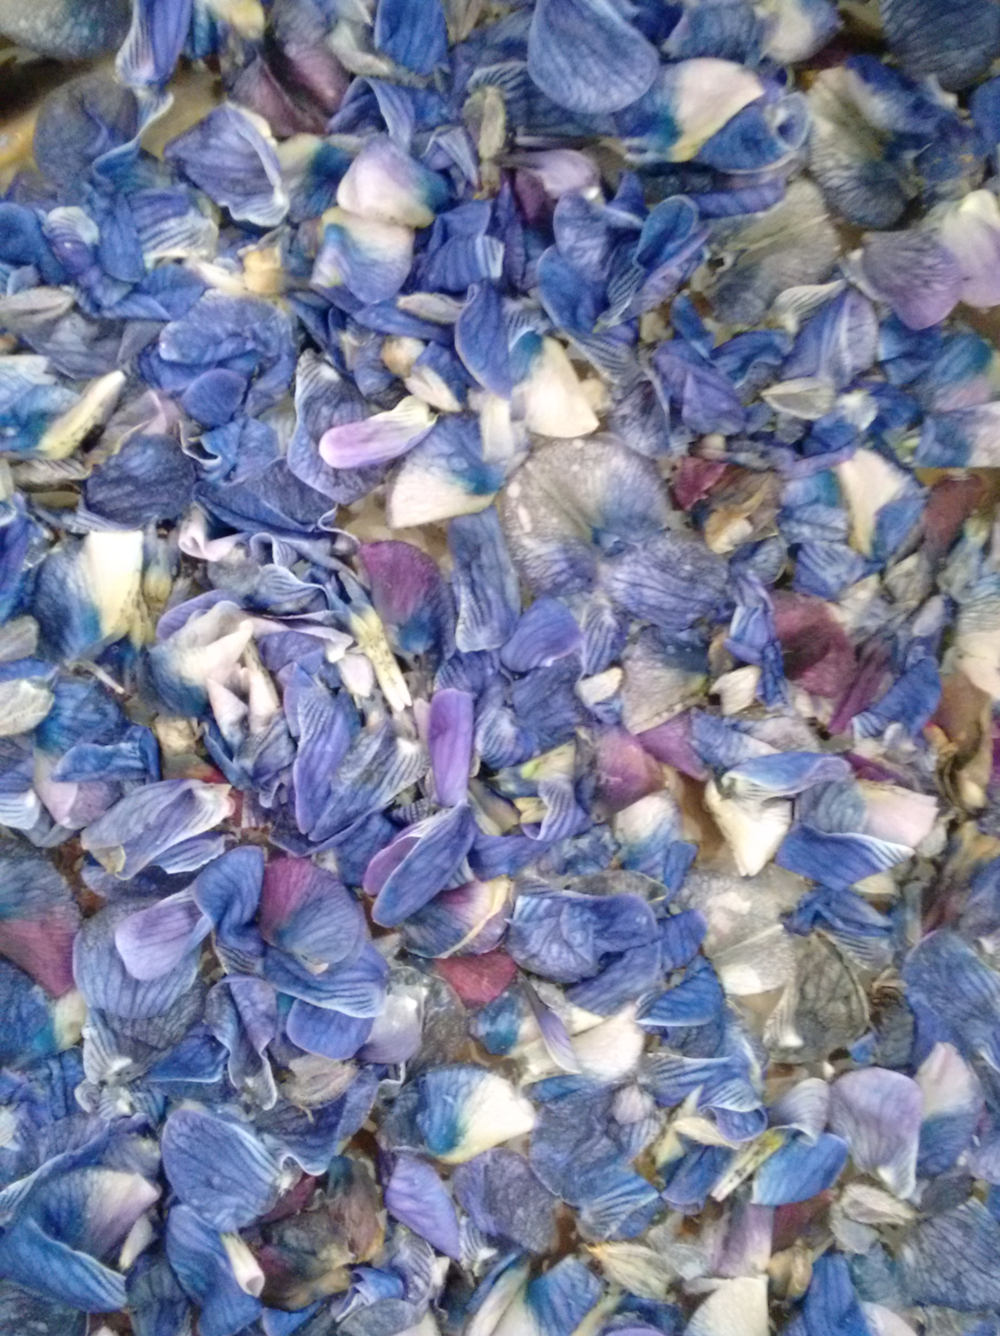 Lupine petals ready to become a yellow dye